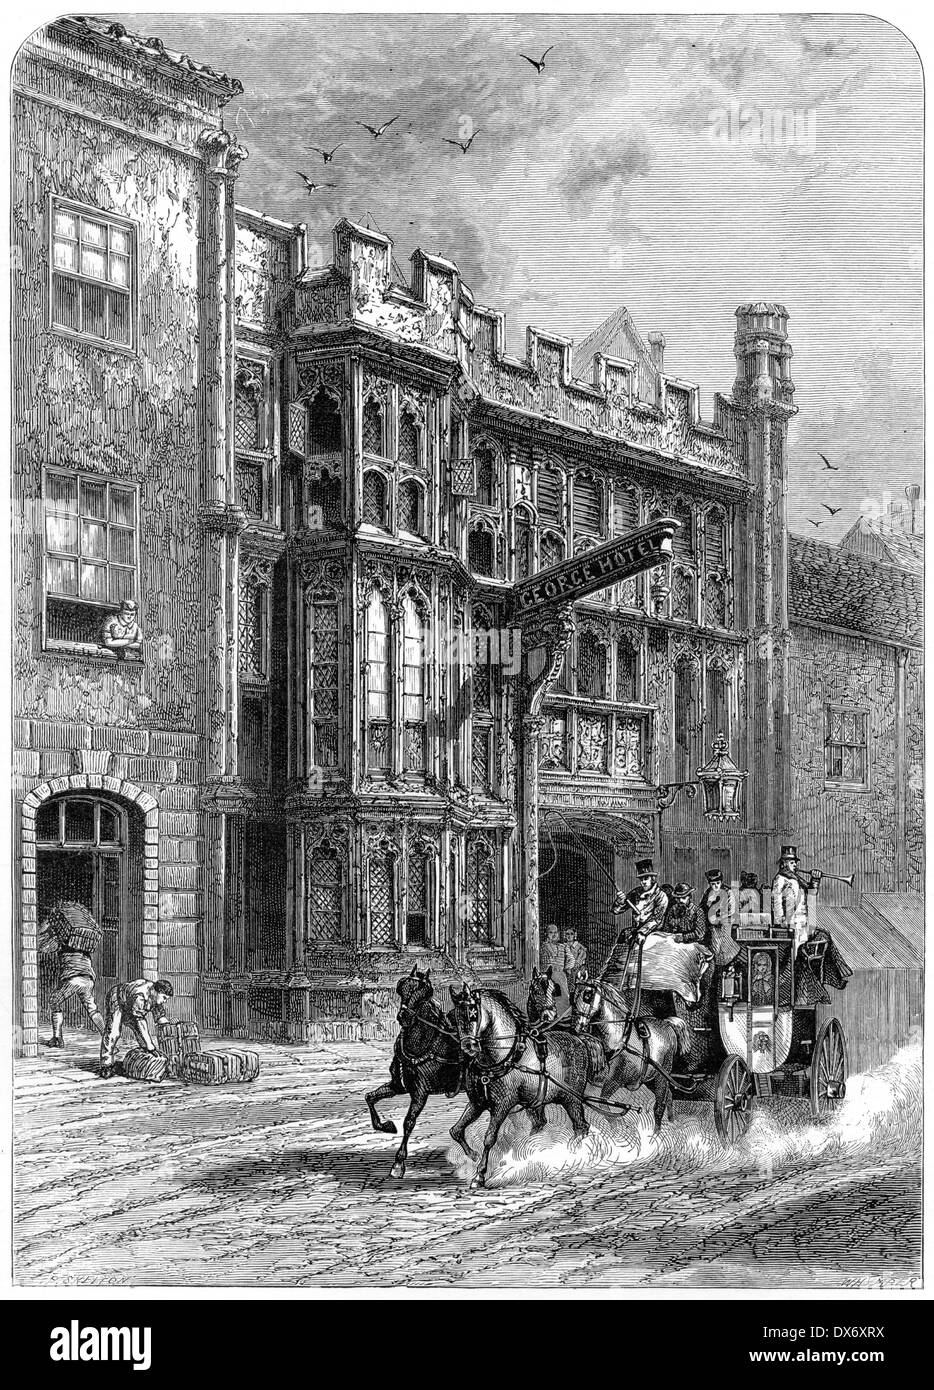 An engraving entitled 'George Inn, Glastonbury' scanned at high resolution from a book published in 1880. - Stock Image